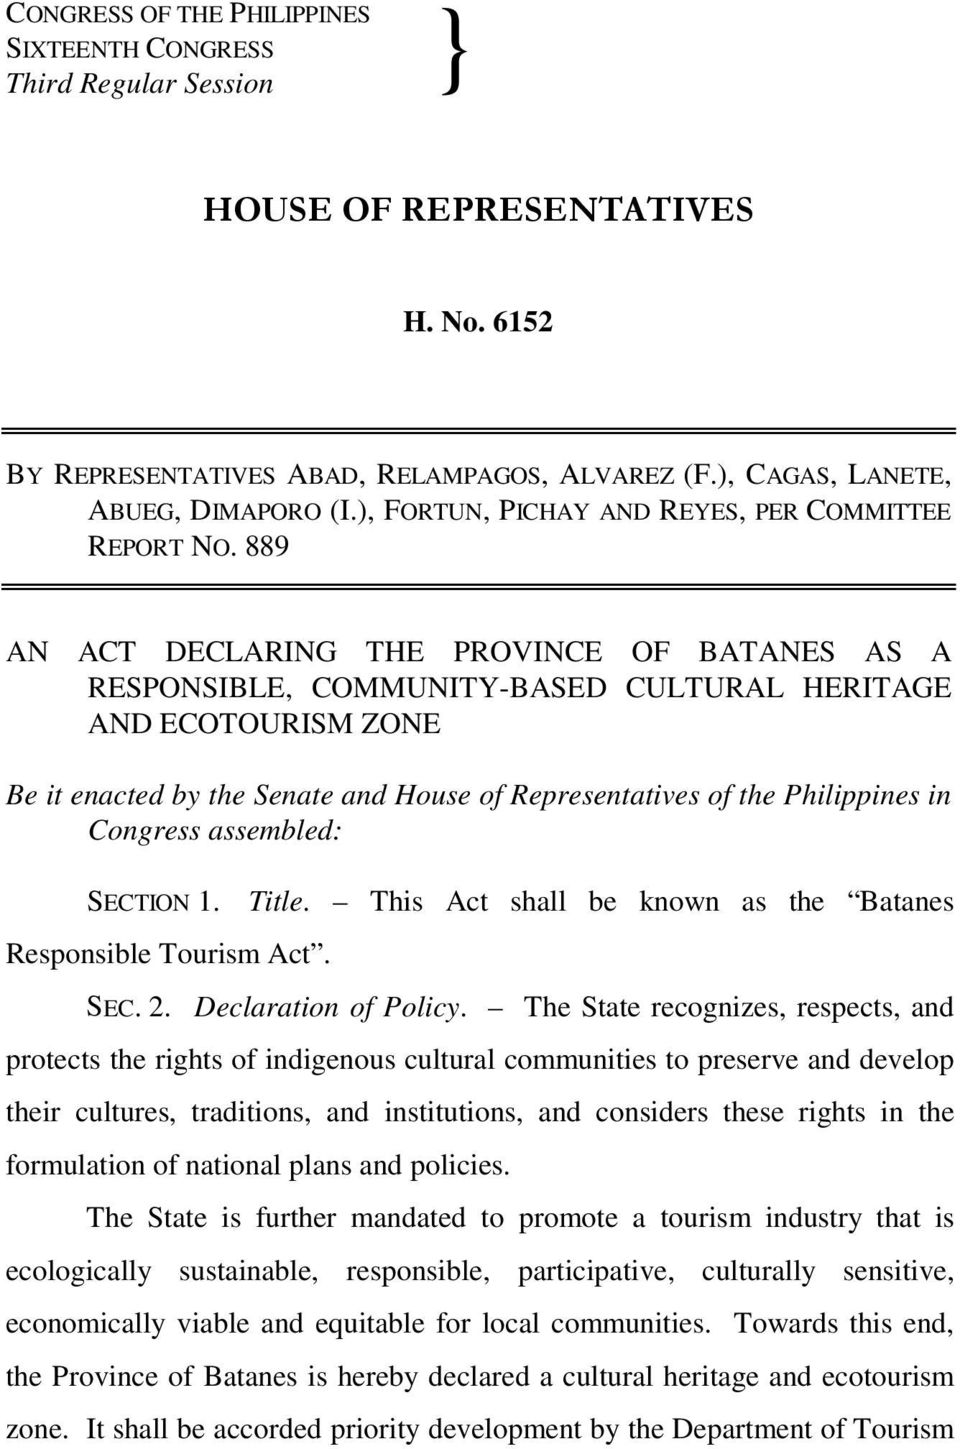 889 AN ACT DECLARING THE PROVINCE OF BATANES AS A RESPONSIBLE, COMMUNITY-BASED CULTURAL HERITAGE AND ECOTOURISM ZONE Be it enacted by the Senate and House of Representatives of the Philippines in